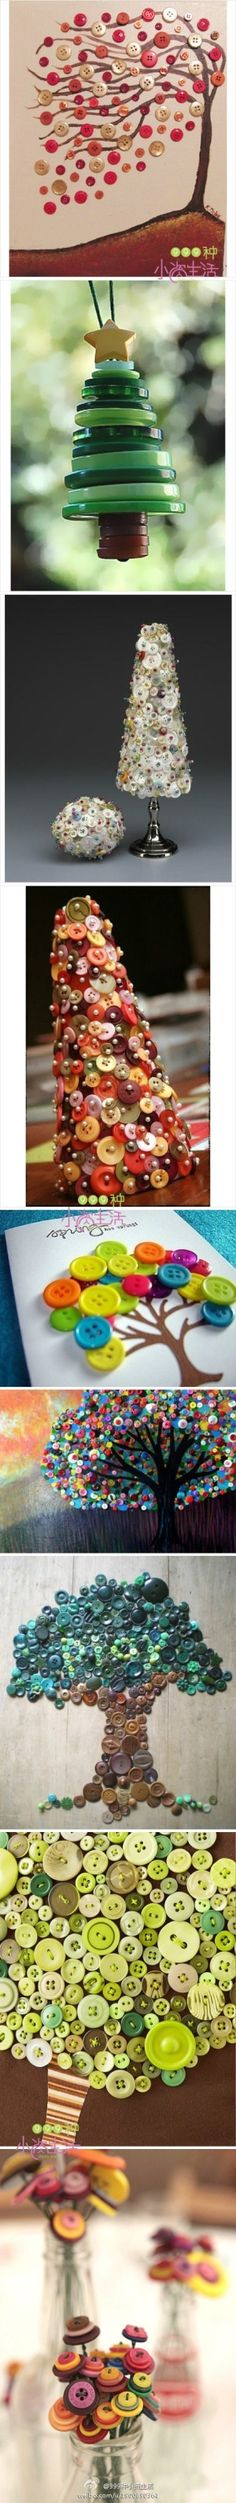 Button crafts. These are amazing!